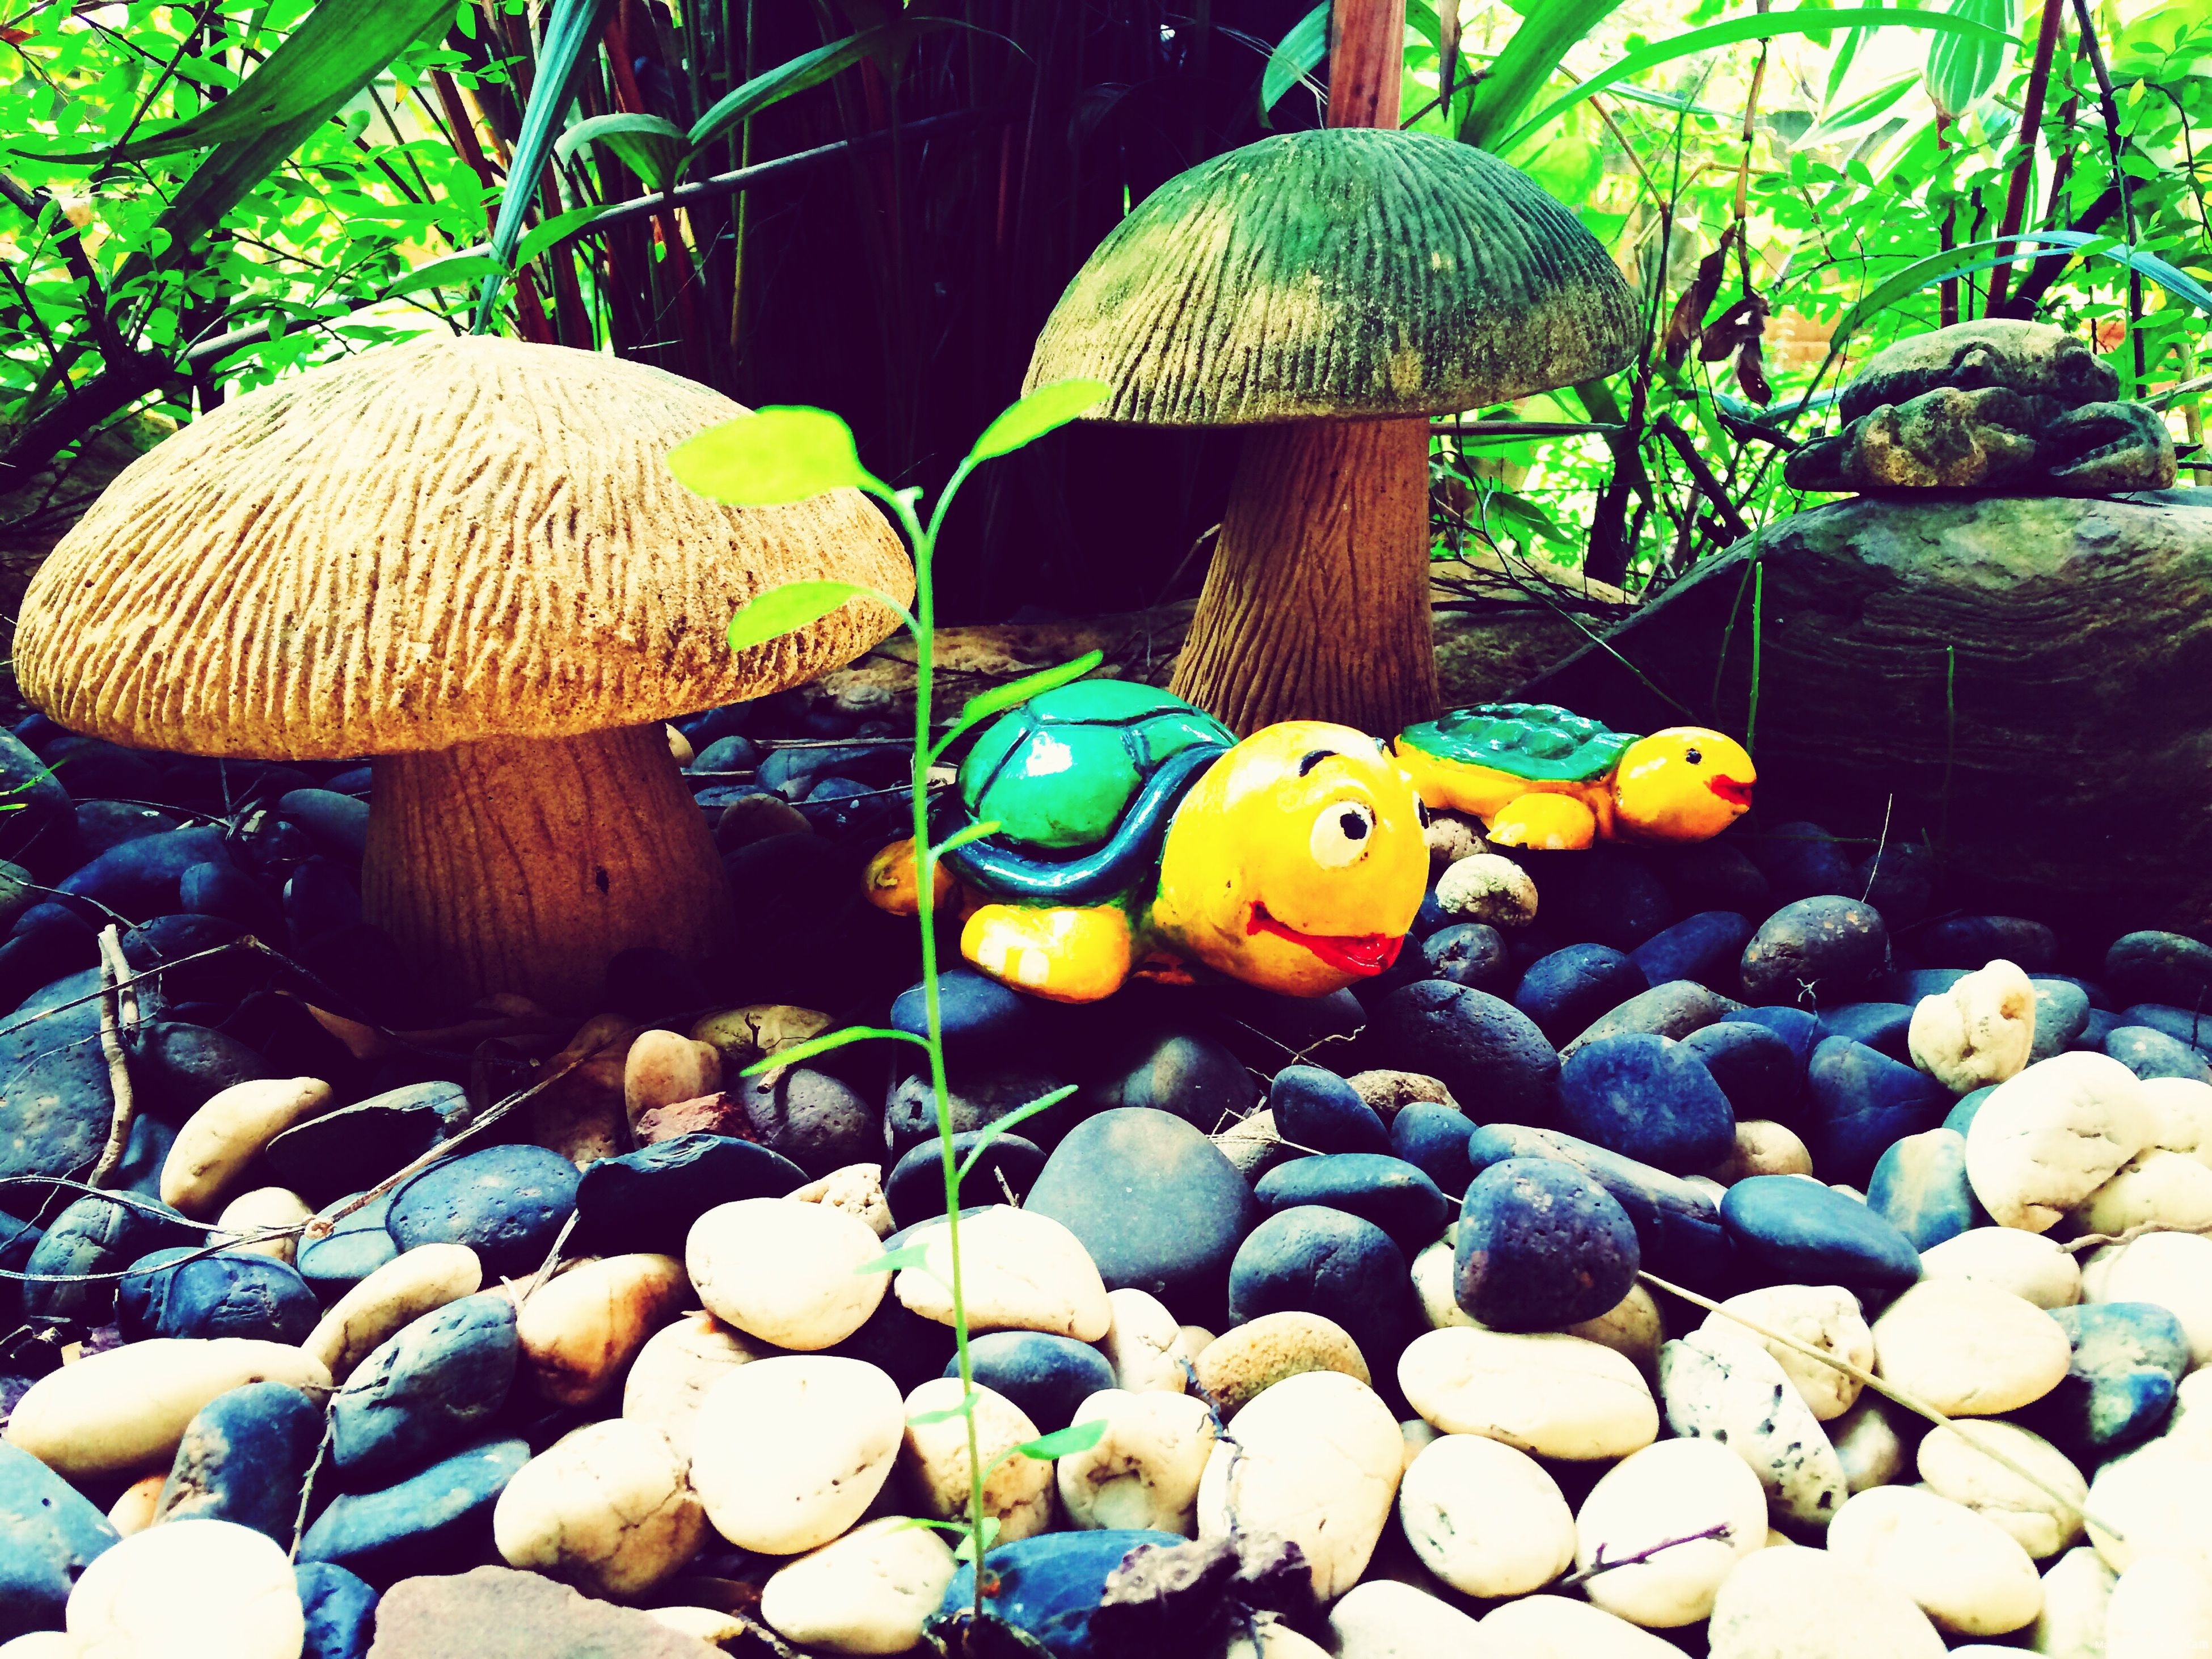 water, tree, nature, animal themes, outdoors, beauty in nature, day, rock - object, no people, stone - object, animal representation, tranquility, duck, sunlight, yellow, animals in the wild, green color, toy, multi colored, park - man made space